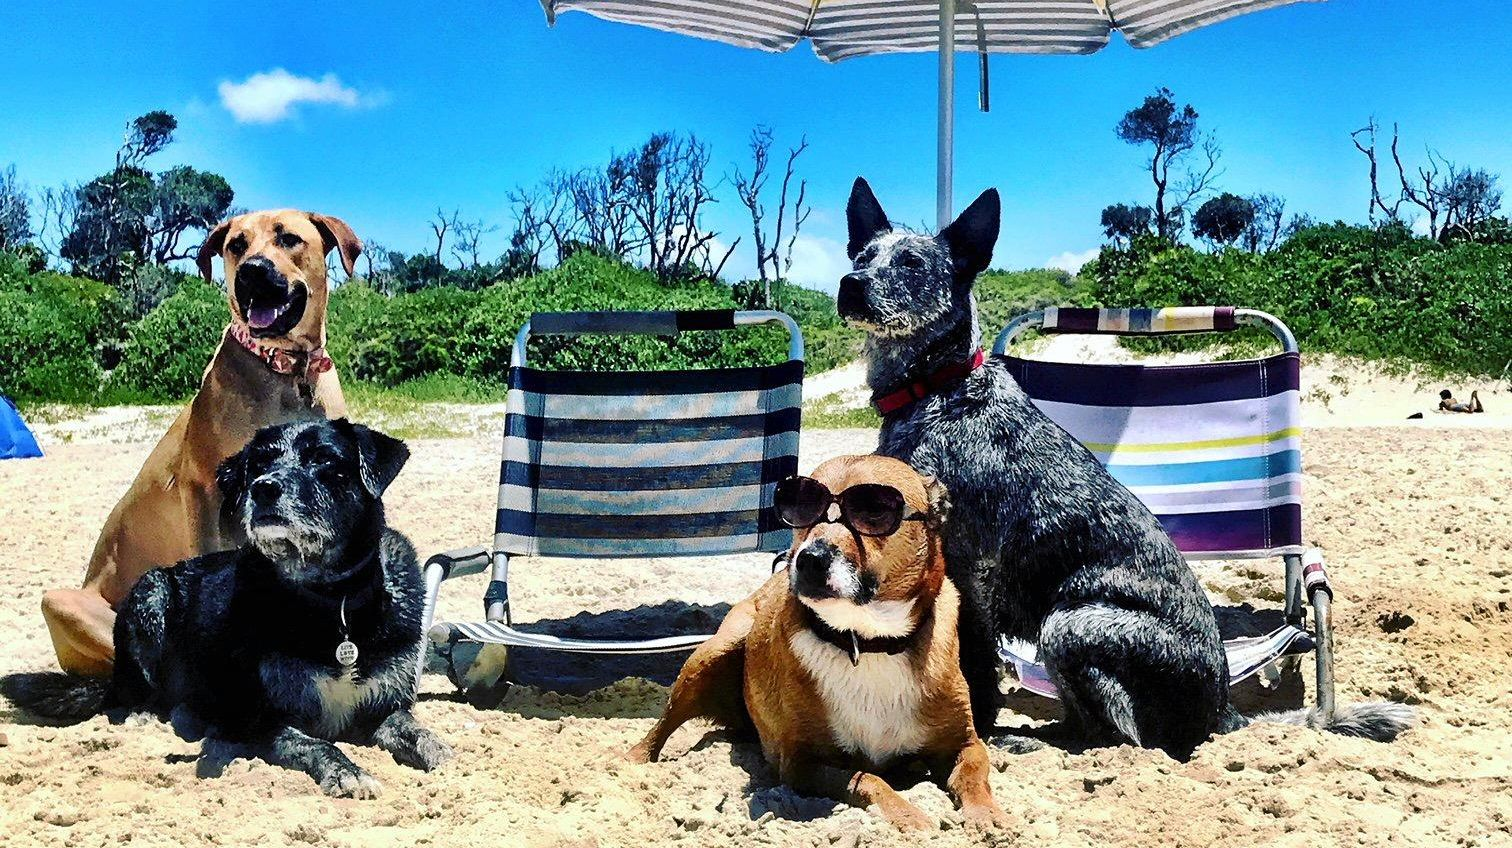 Dogs on beaches are causing issues, says Greg Barnes.